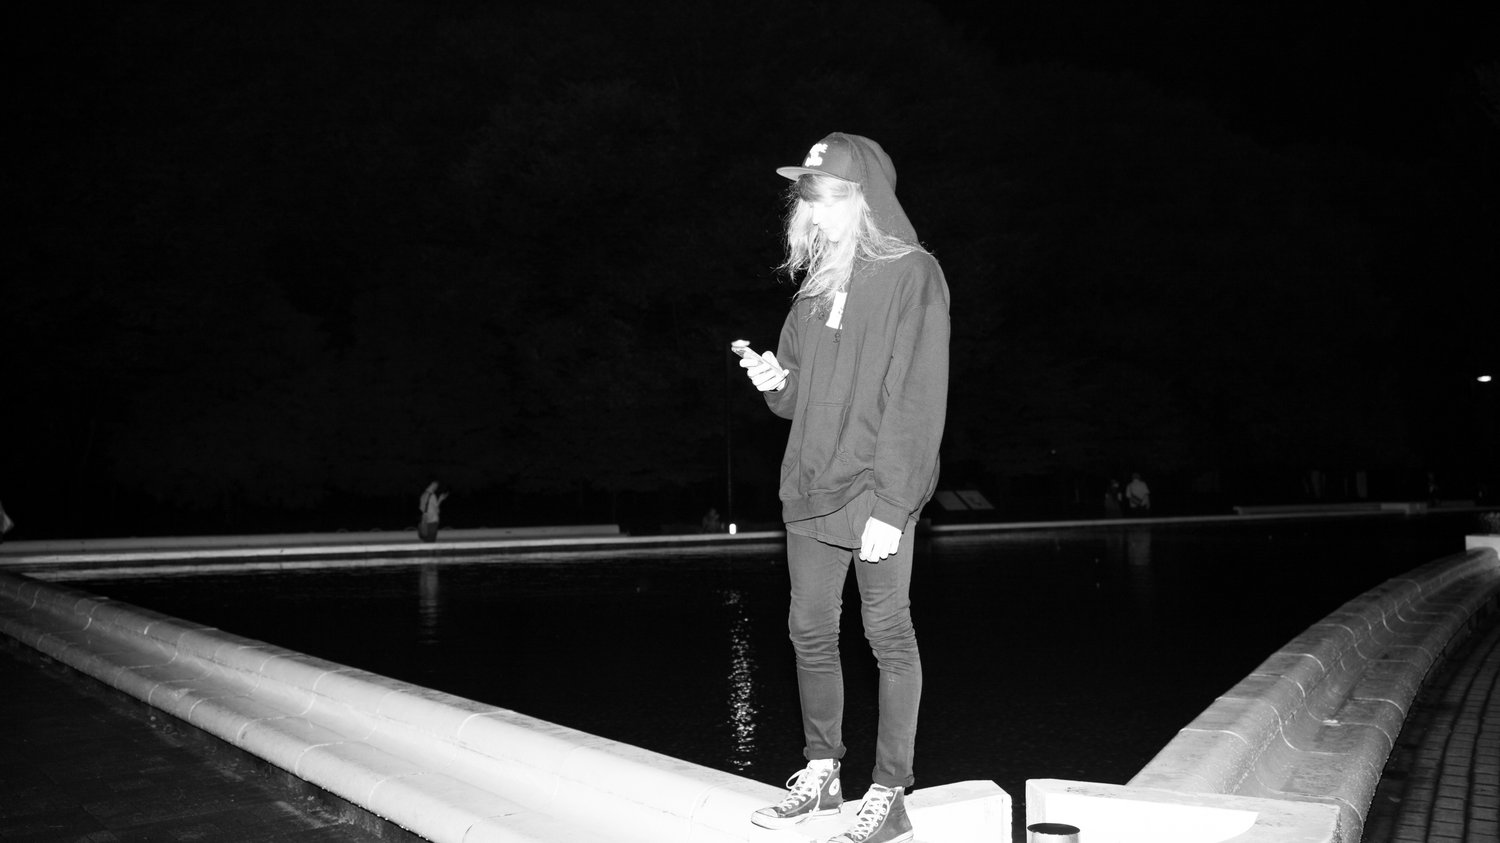 .@nprmusic features @CASHMERECAT and discusses his all new album #9 and more https://t.co/l9R1Q0TzAK https://t.co/1zJhZw5L1s